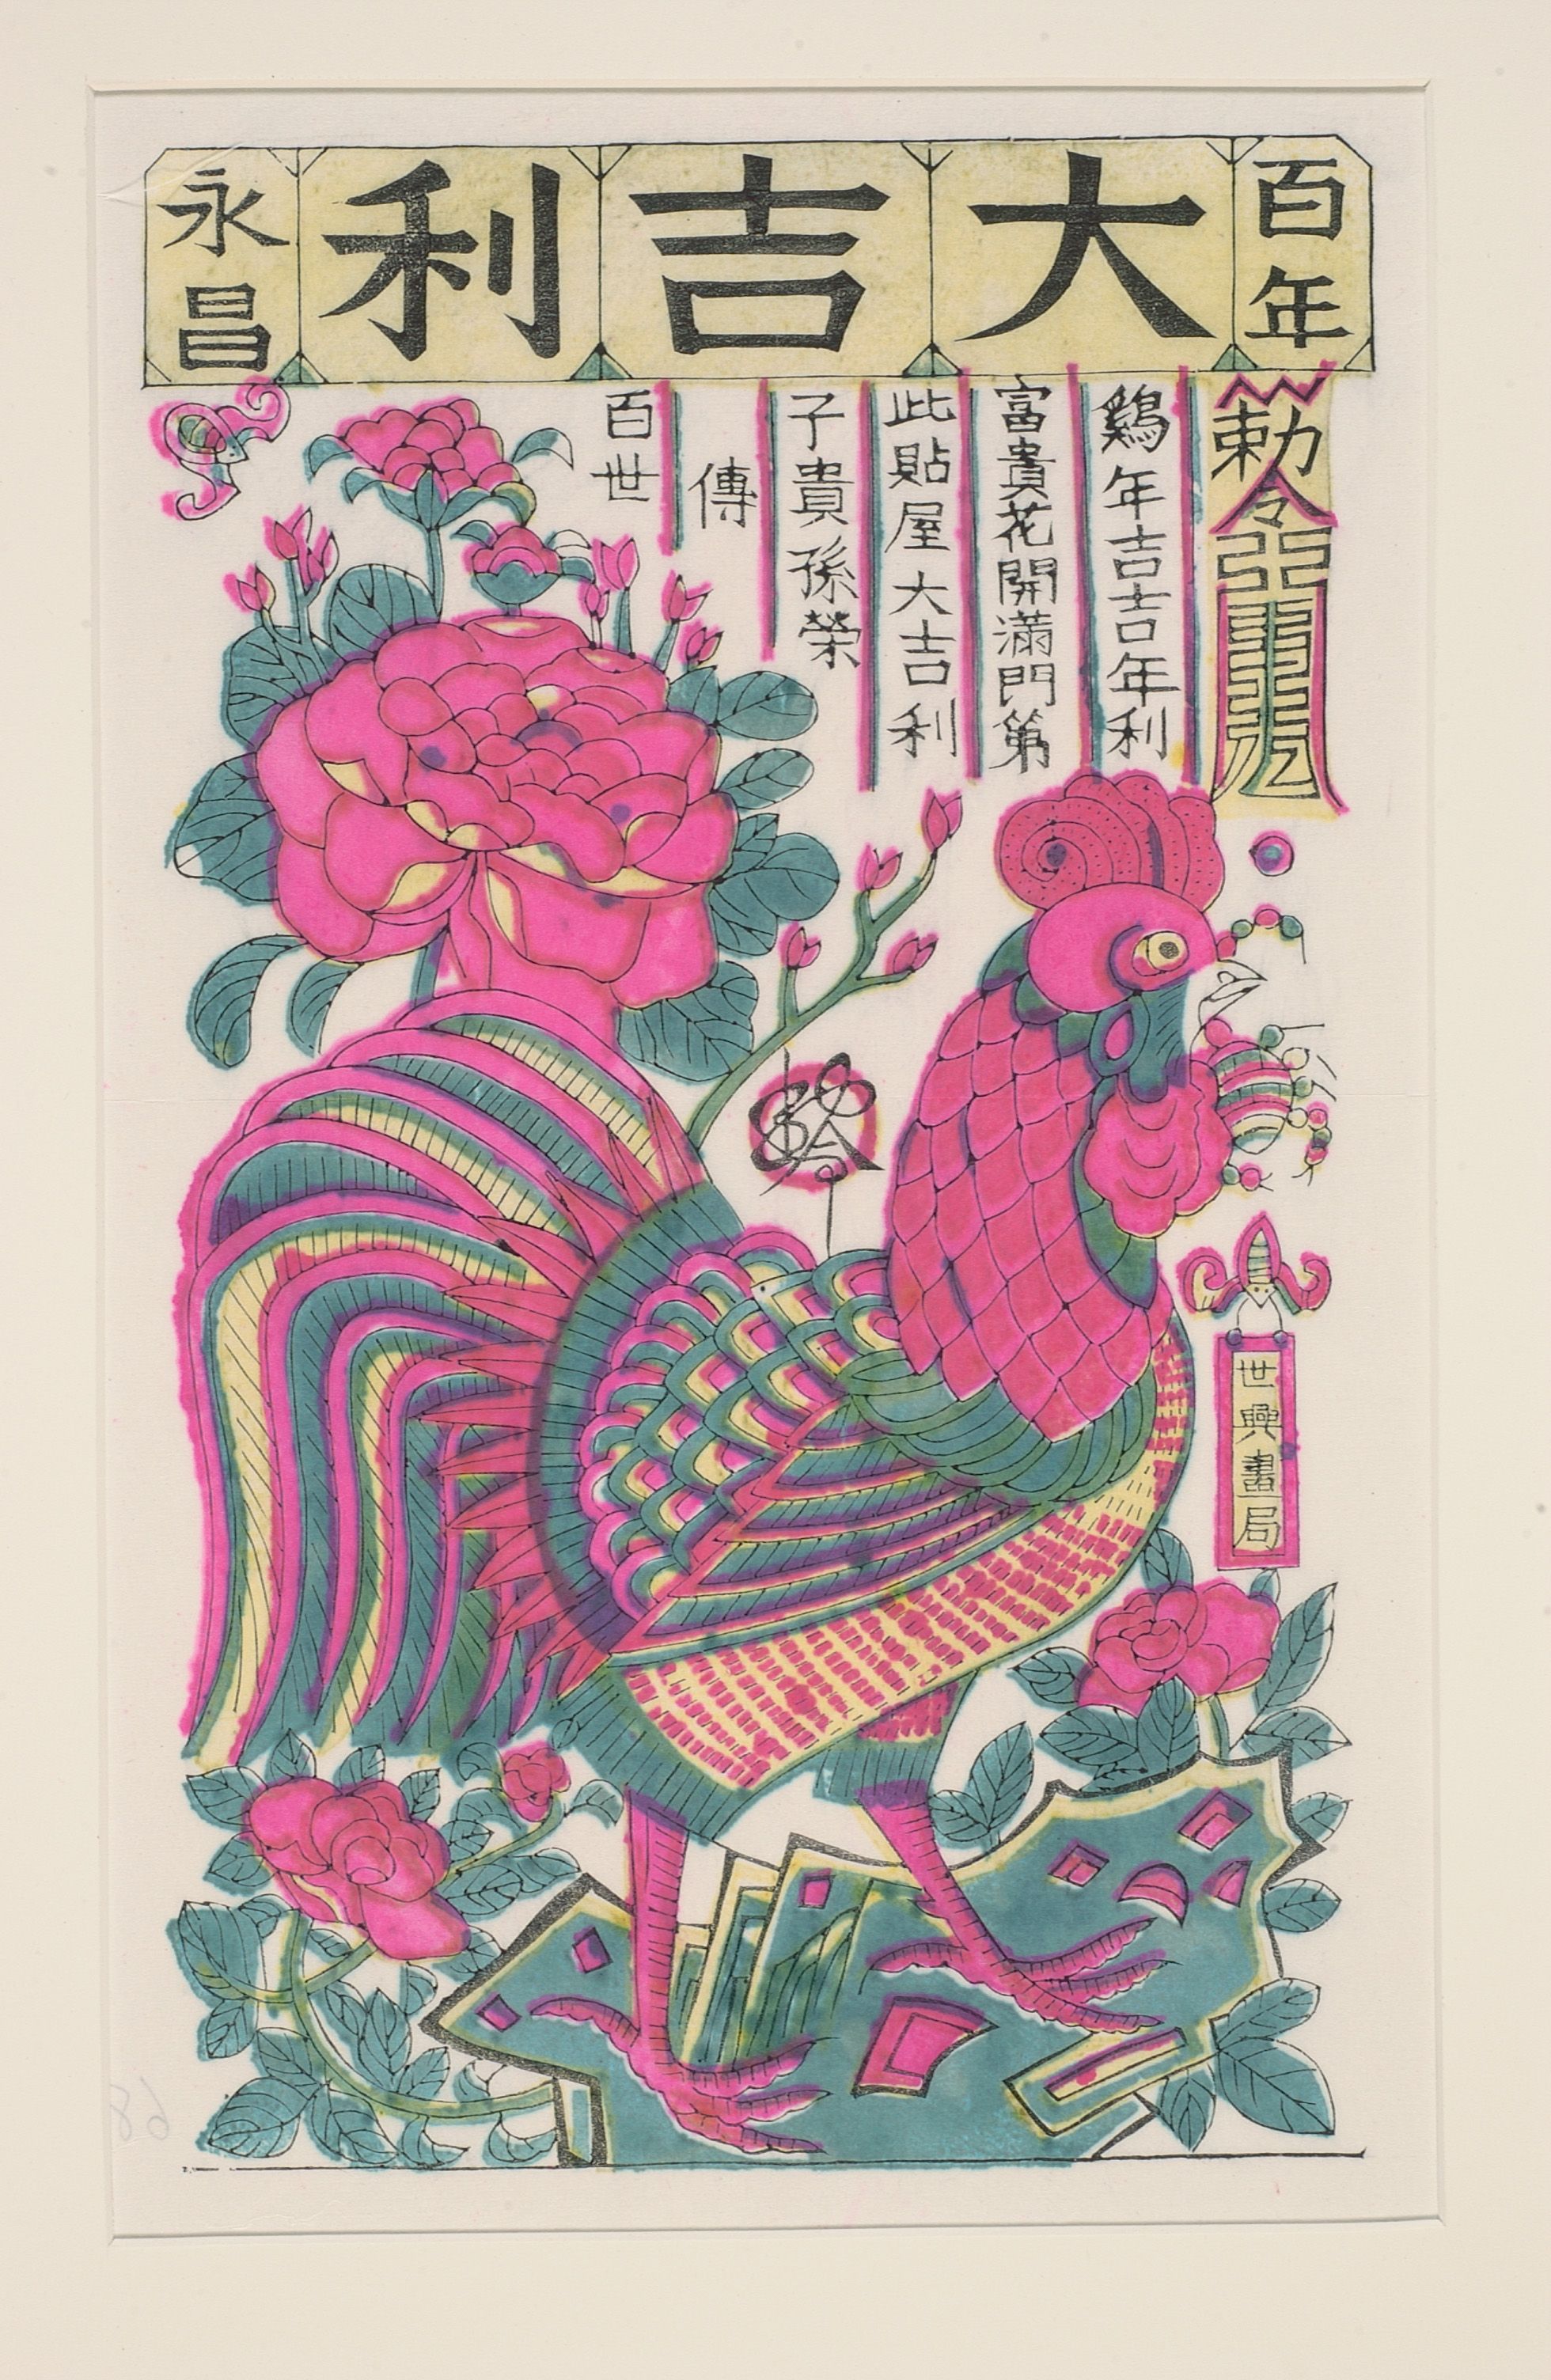 this woodblock print from the asian civilisations museum belongs to a set of five made by woodblock water colour printing process